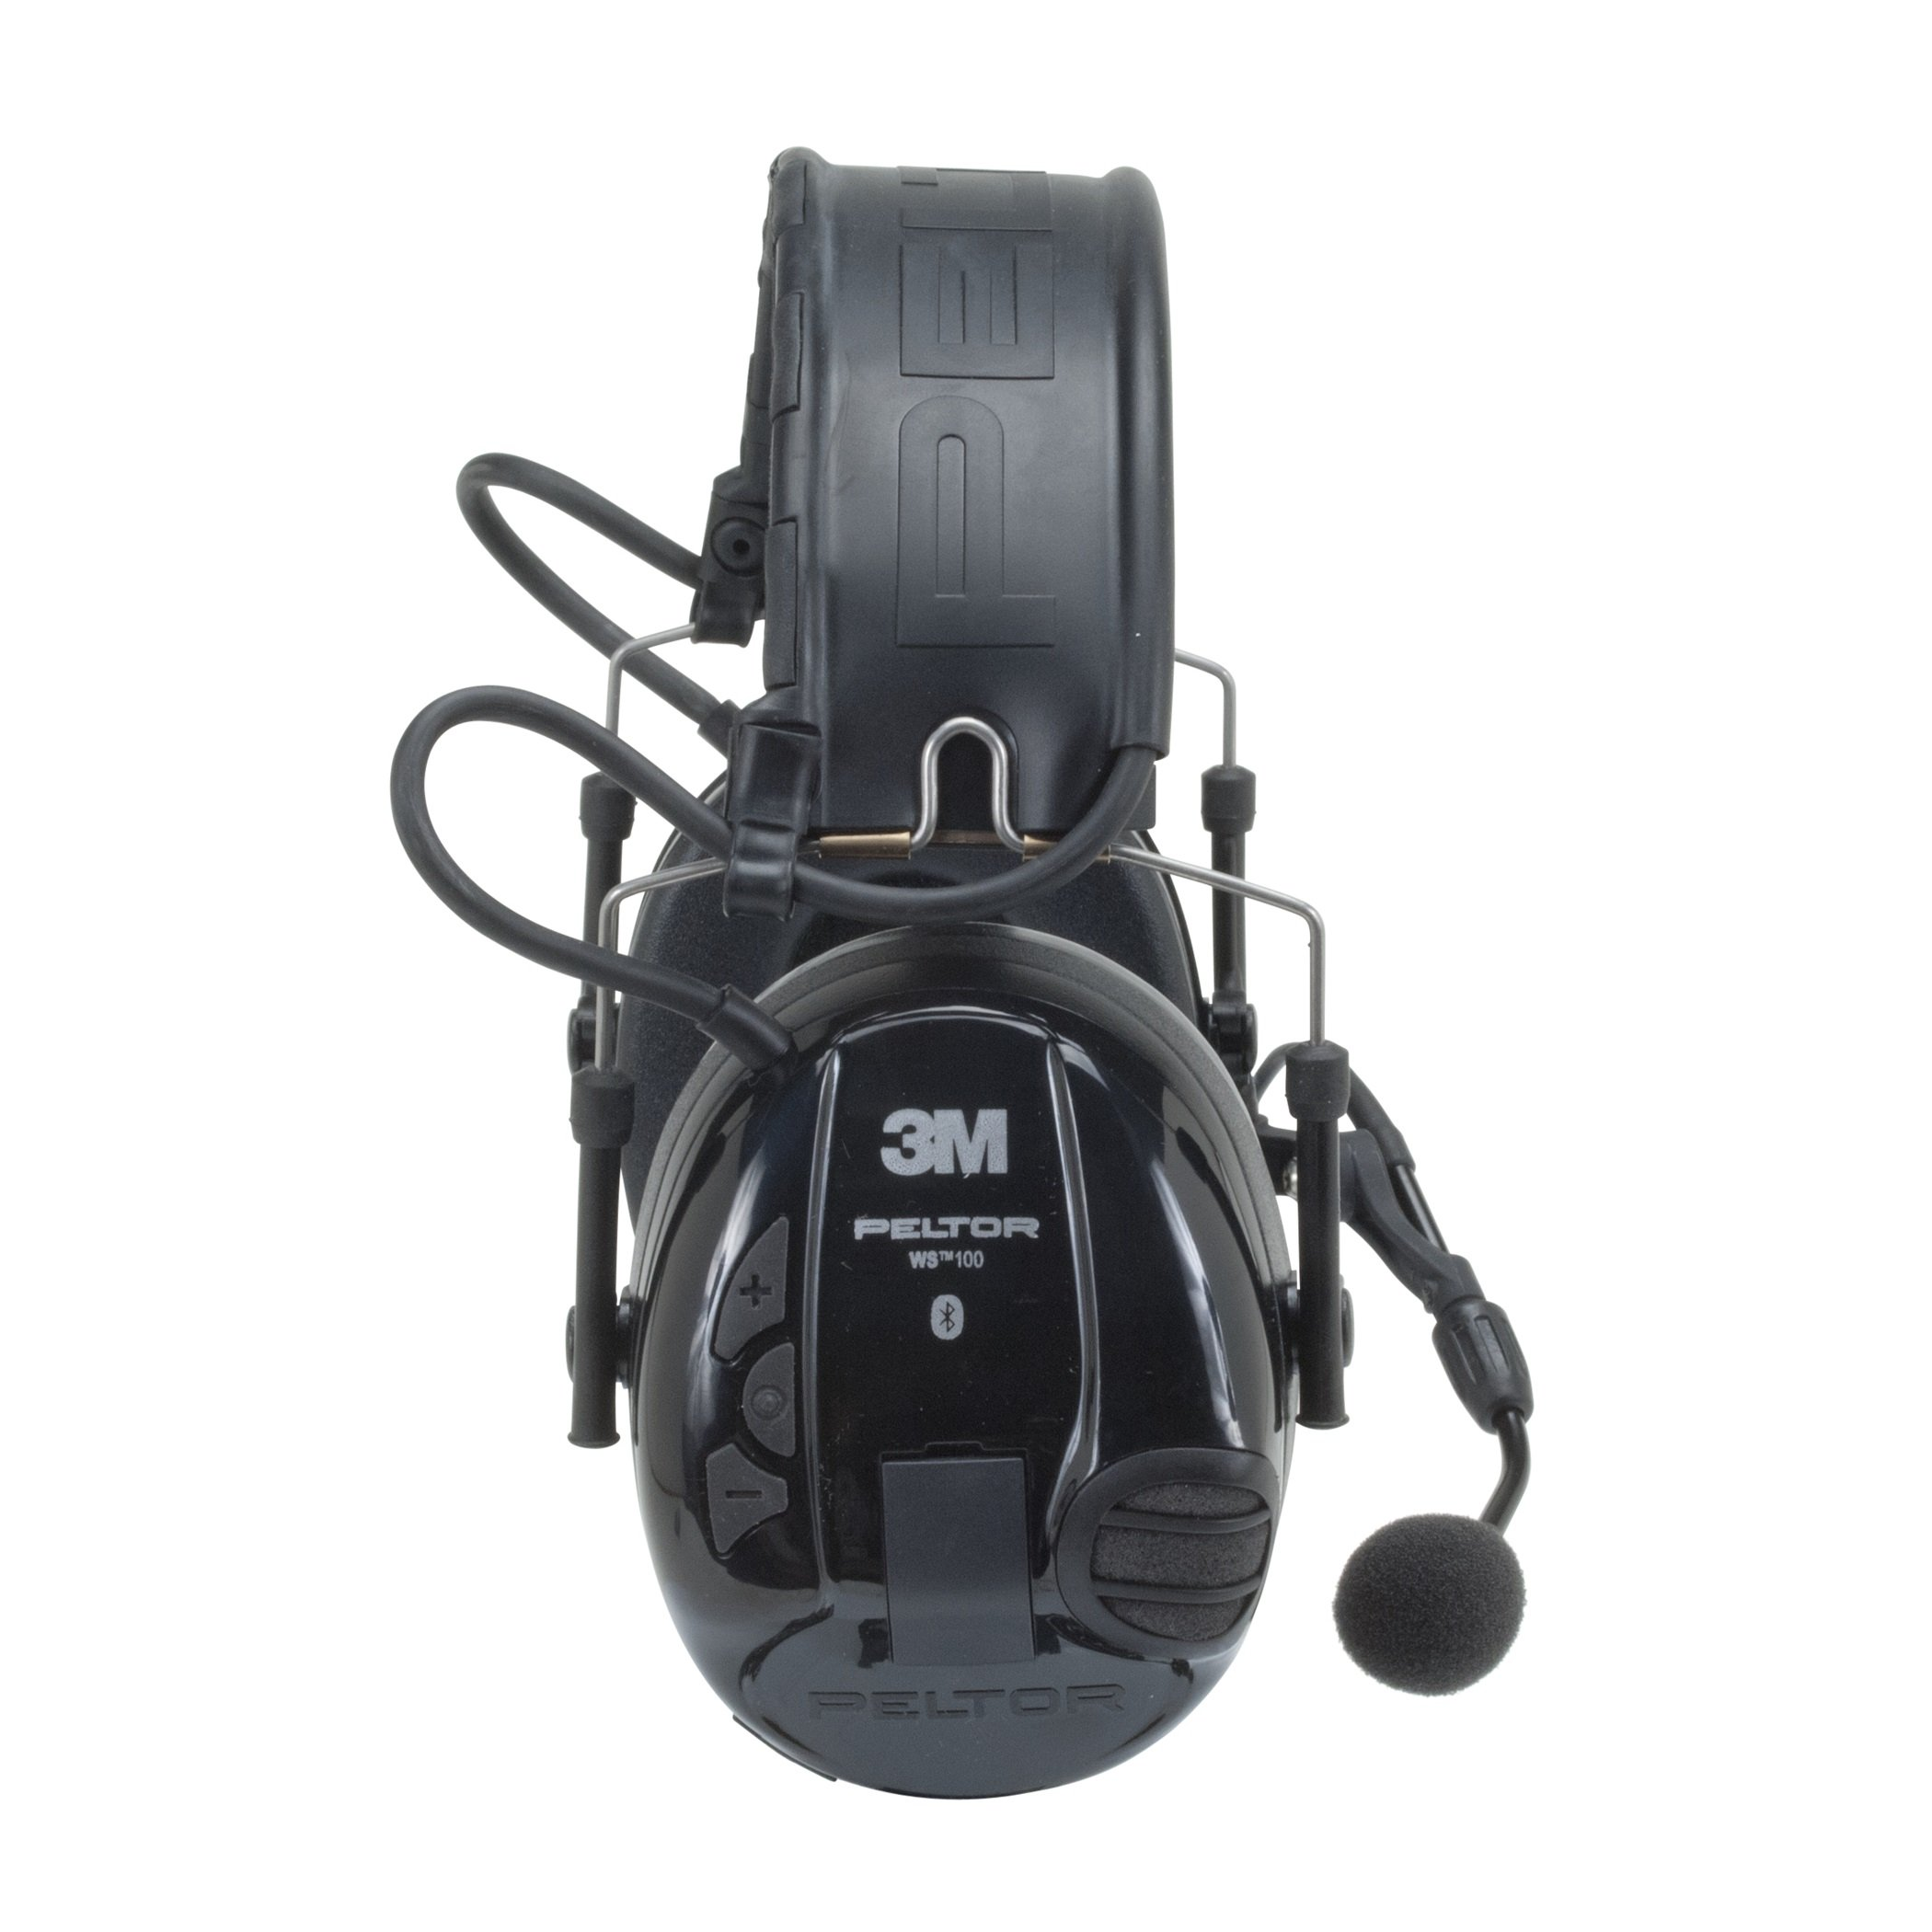 3M Peltor WS 100 Communications Headset MT16H21FWS5UM580, 20 dB Noise Reduction, Black